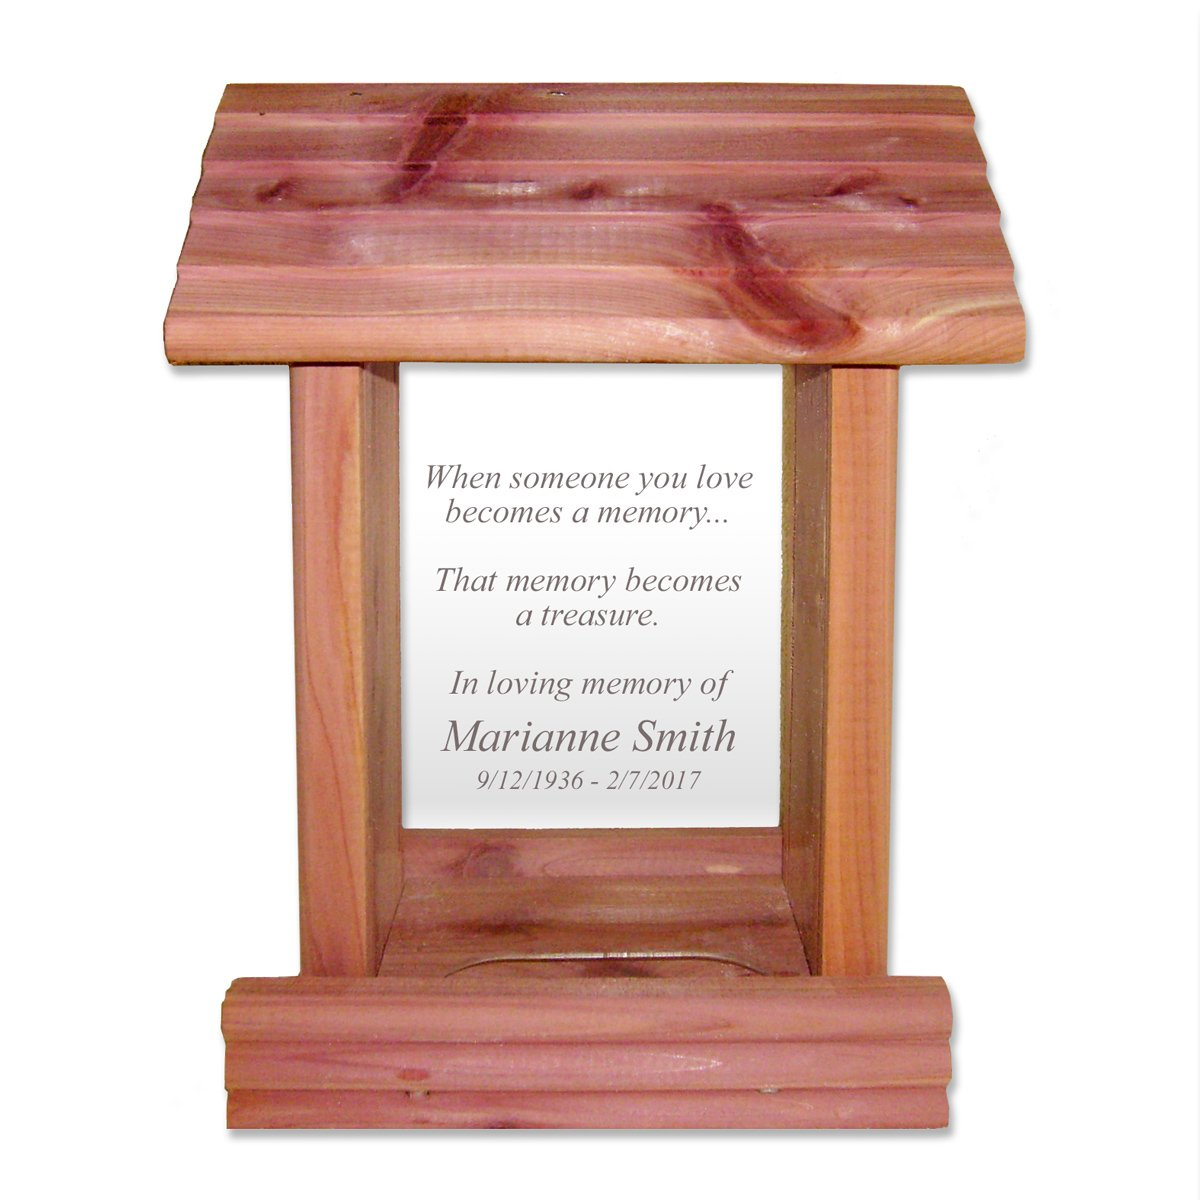 Custom Laser Engraved Sympathy Gift Memorial Bird Feeder Cedar Wood Made in USA and Includes Your Personalized In Loving Memory Inscription